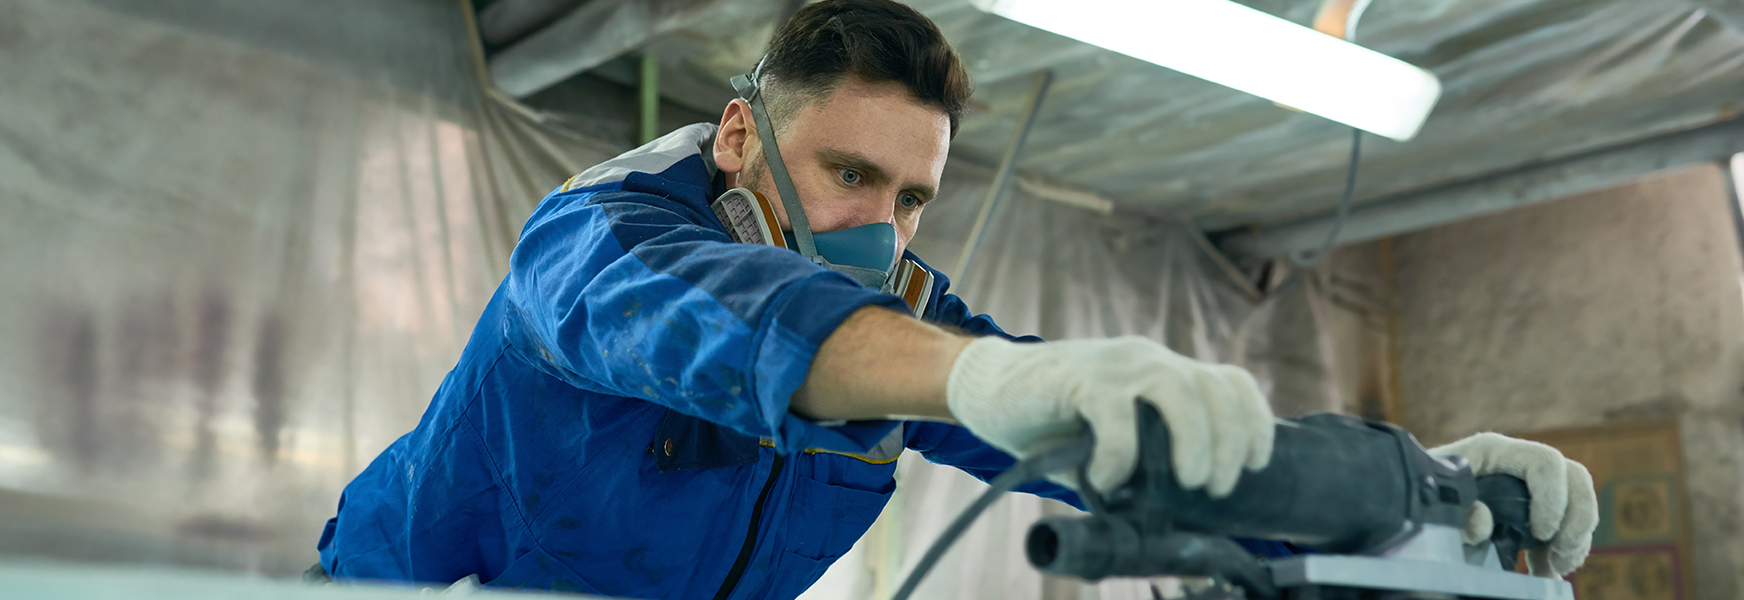 Man in respirator using a power sander